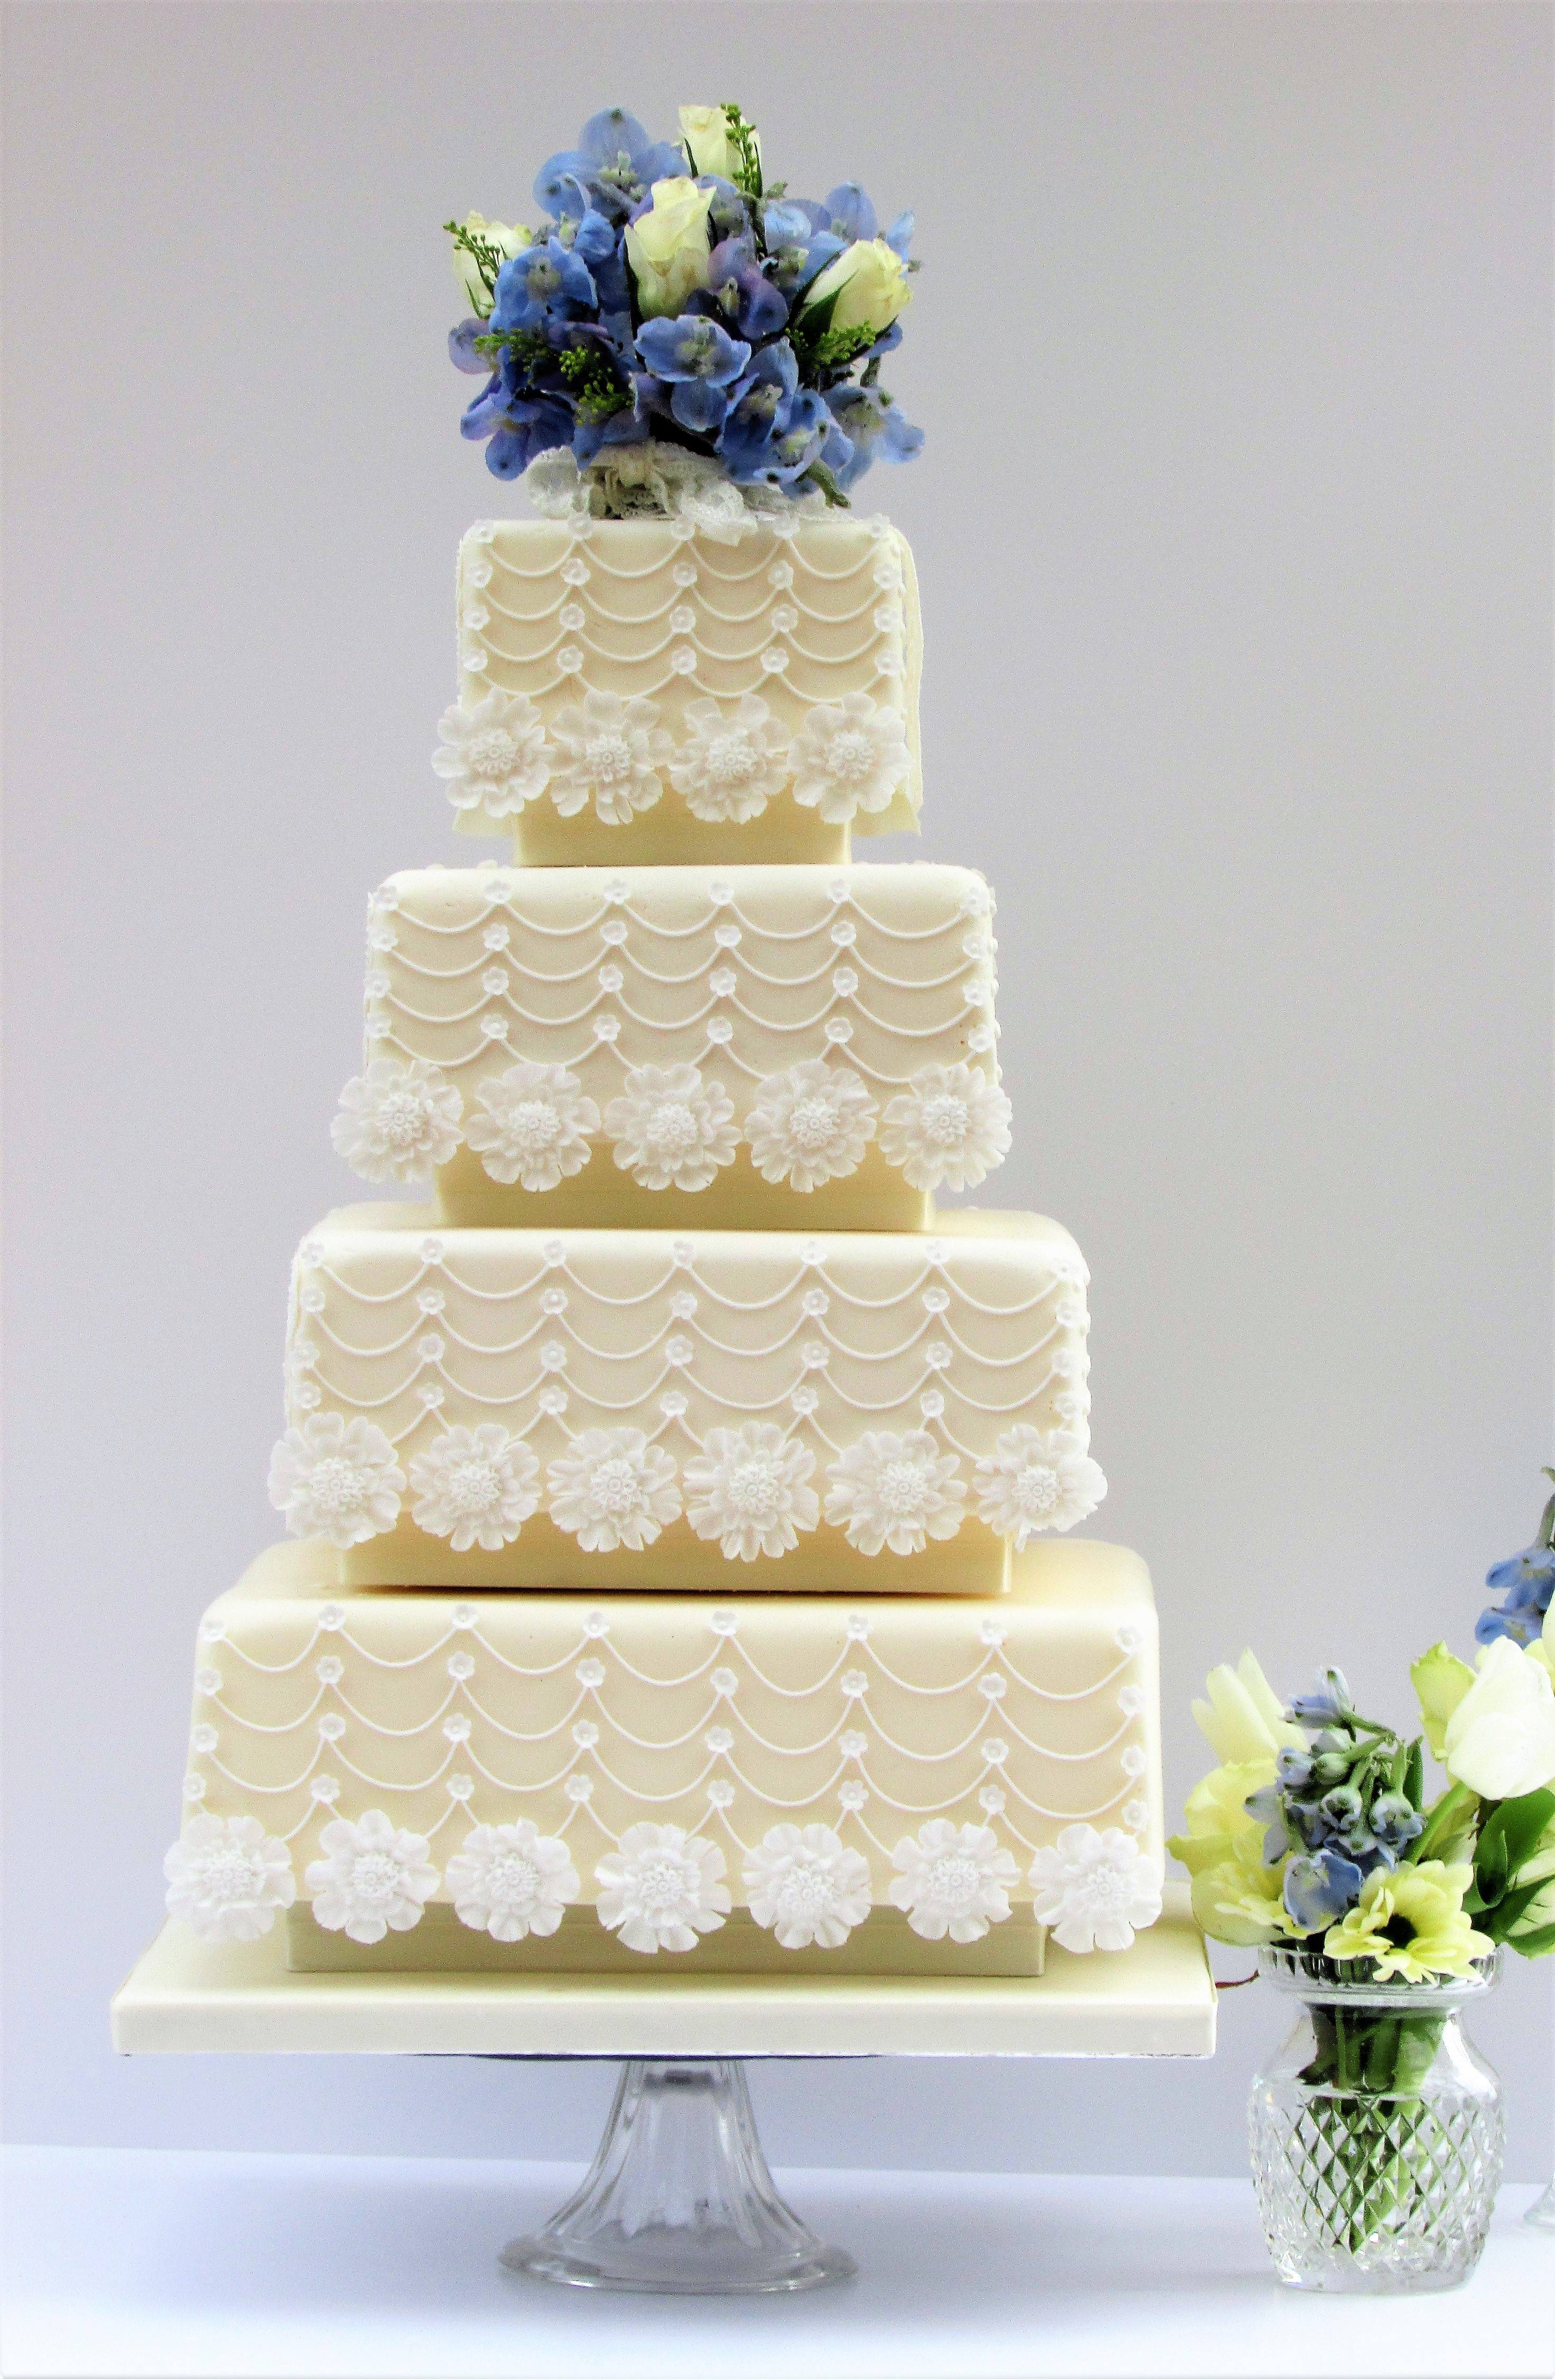 Wedding Cakes in Winchester, Hampshire by Cocoa & Whey Cakes